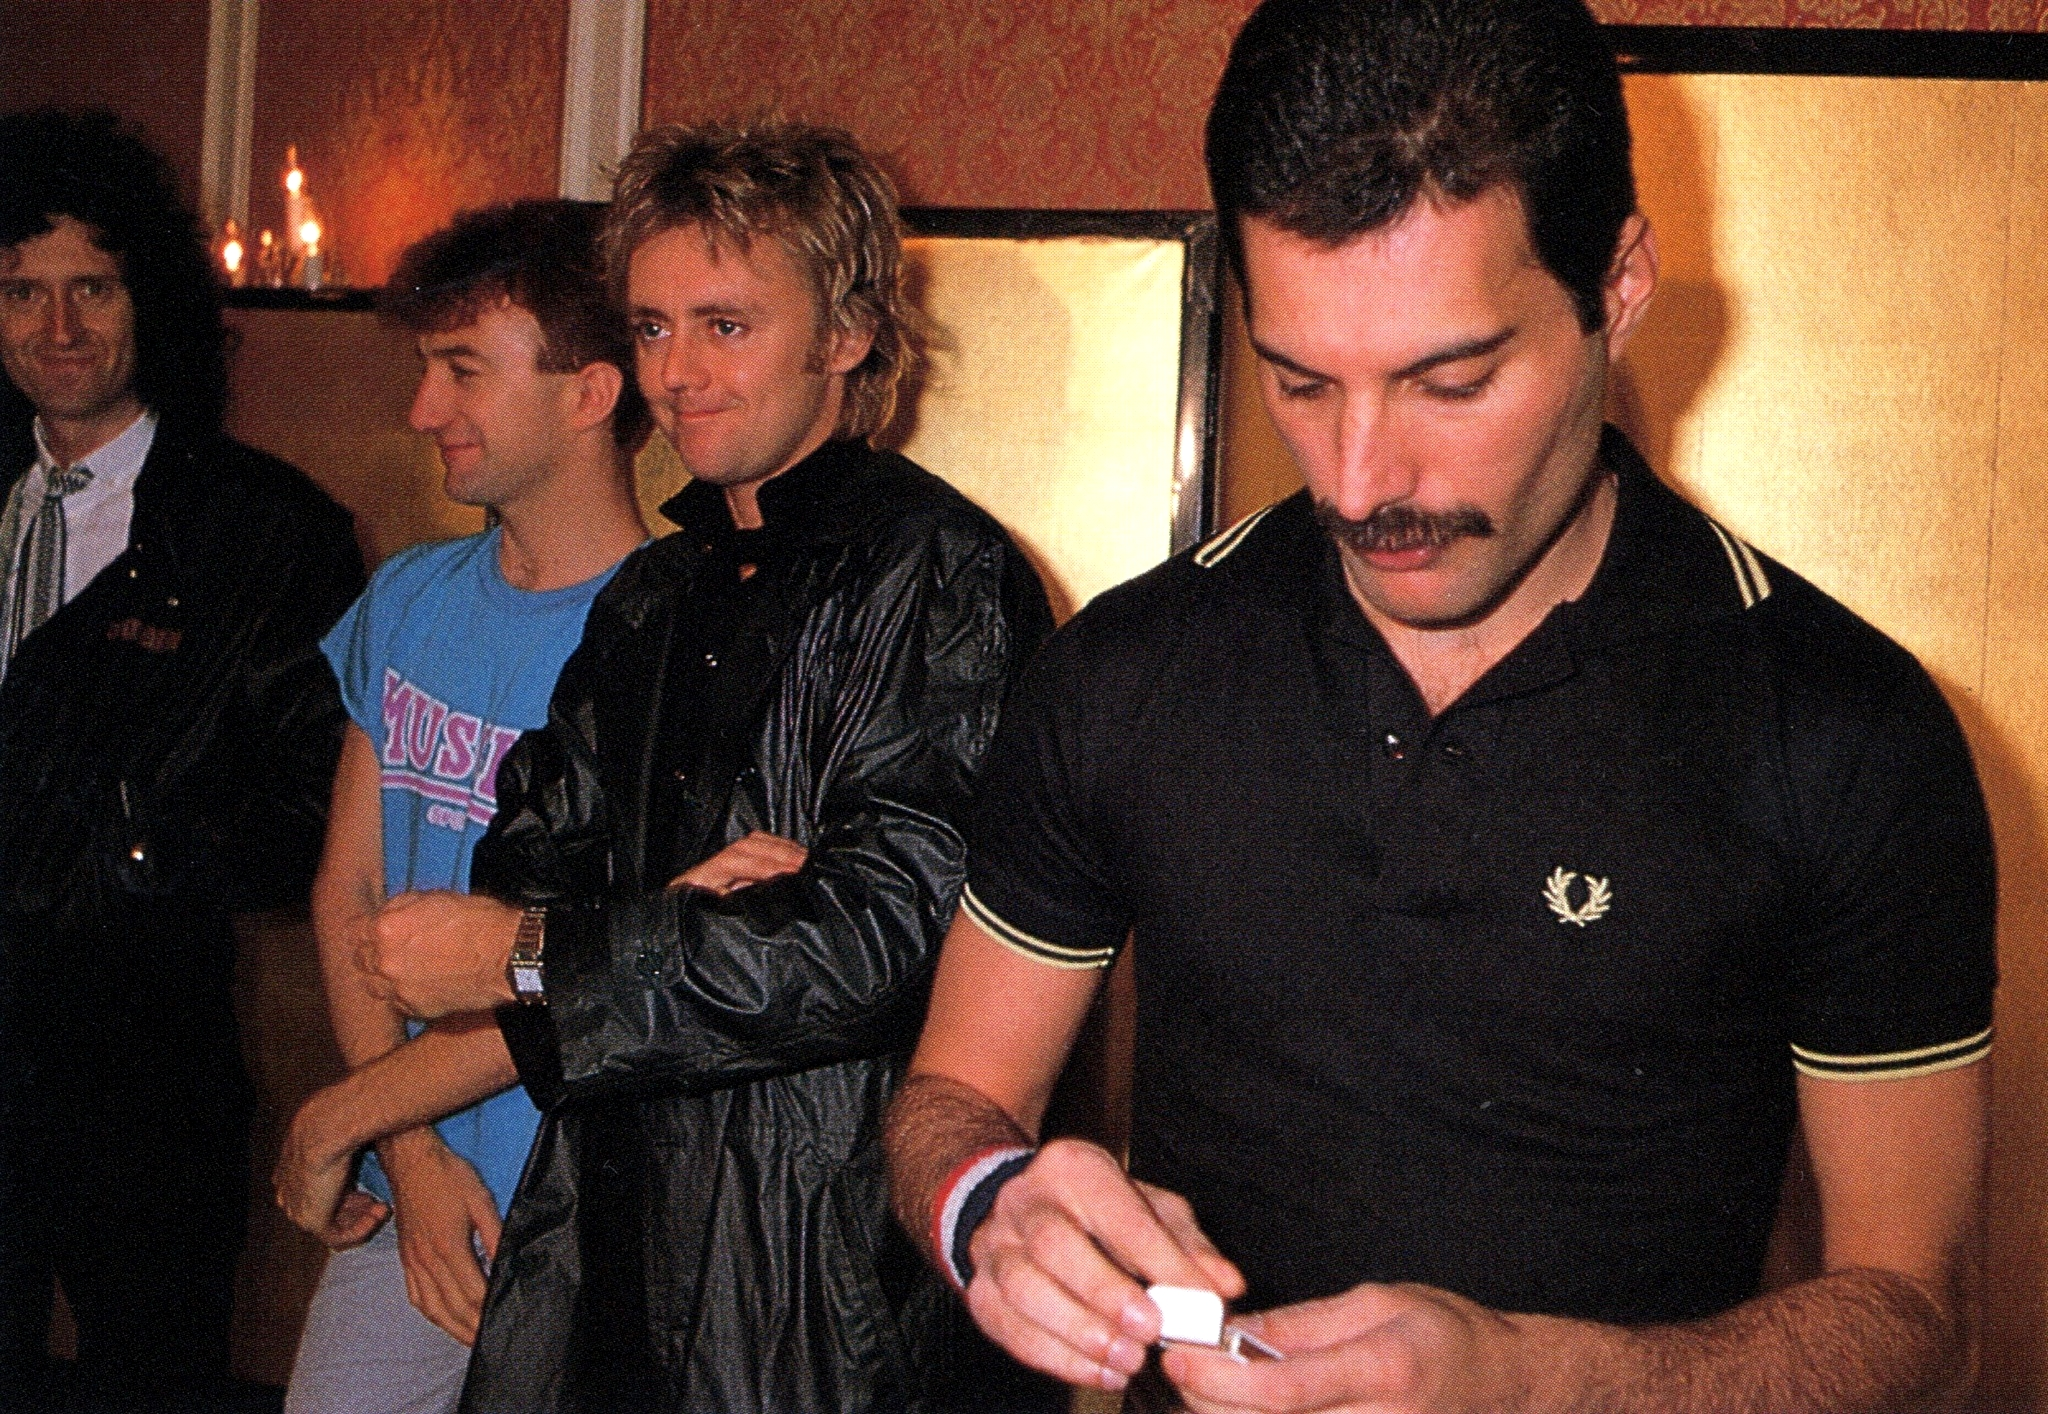 queen-in-japan-1982-photo.jpg